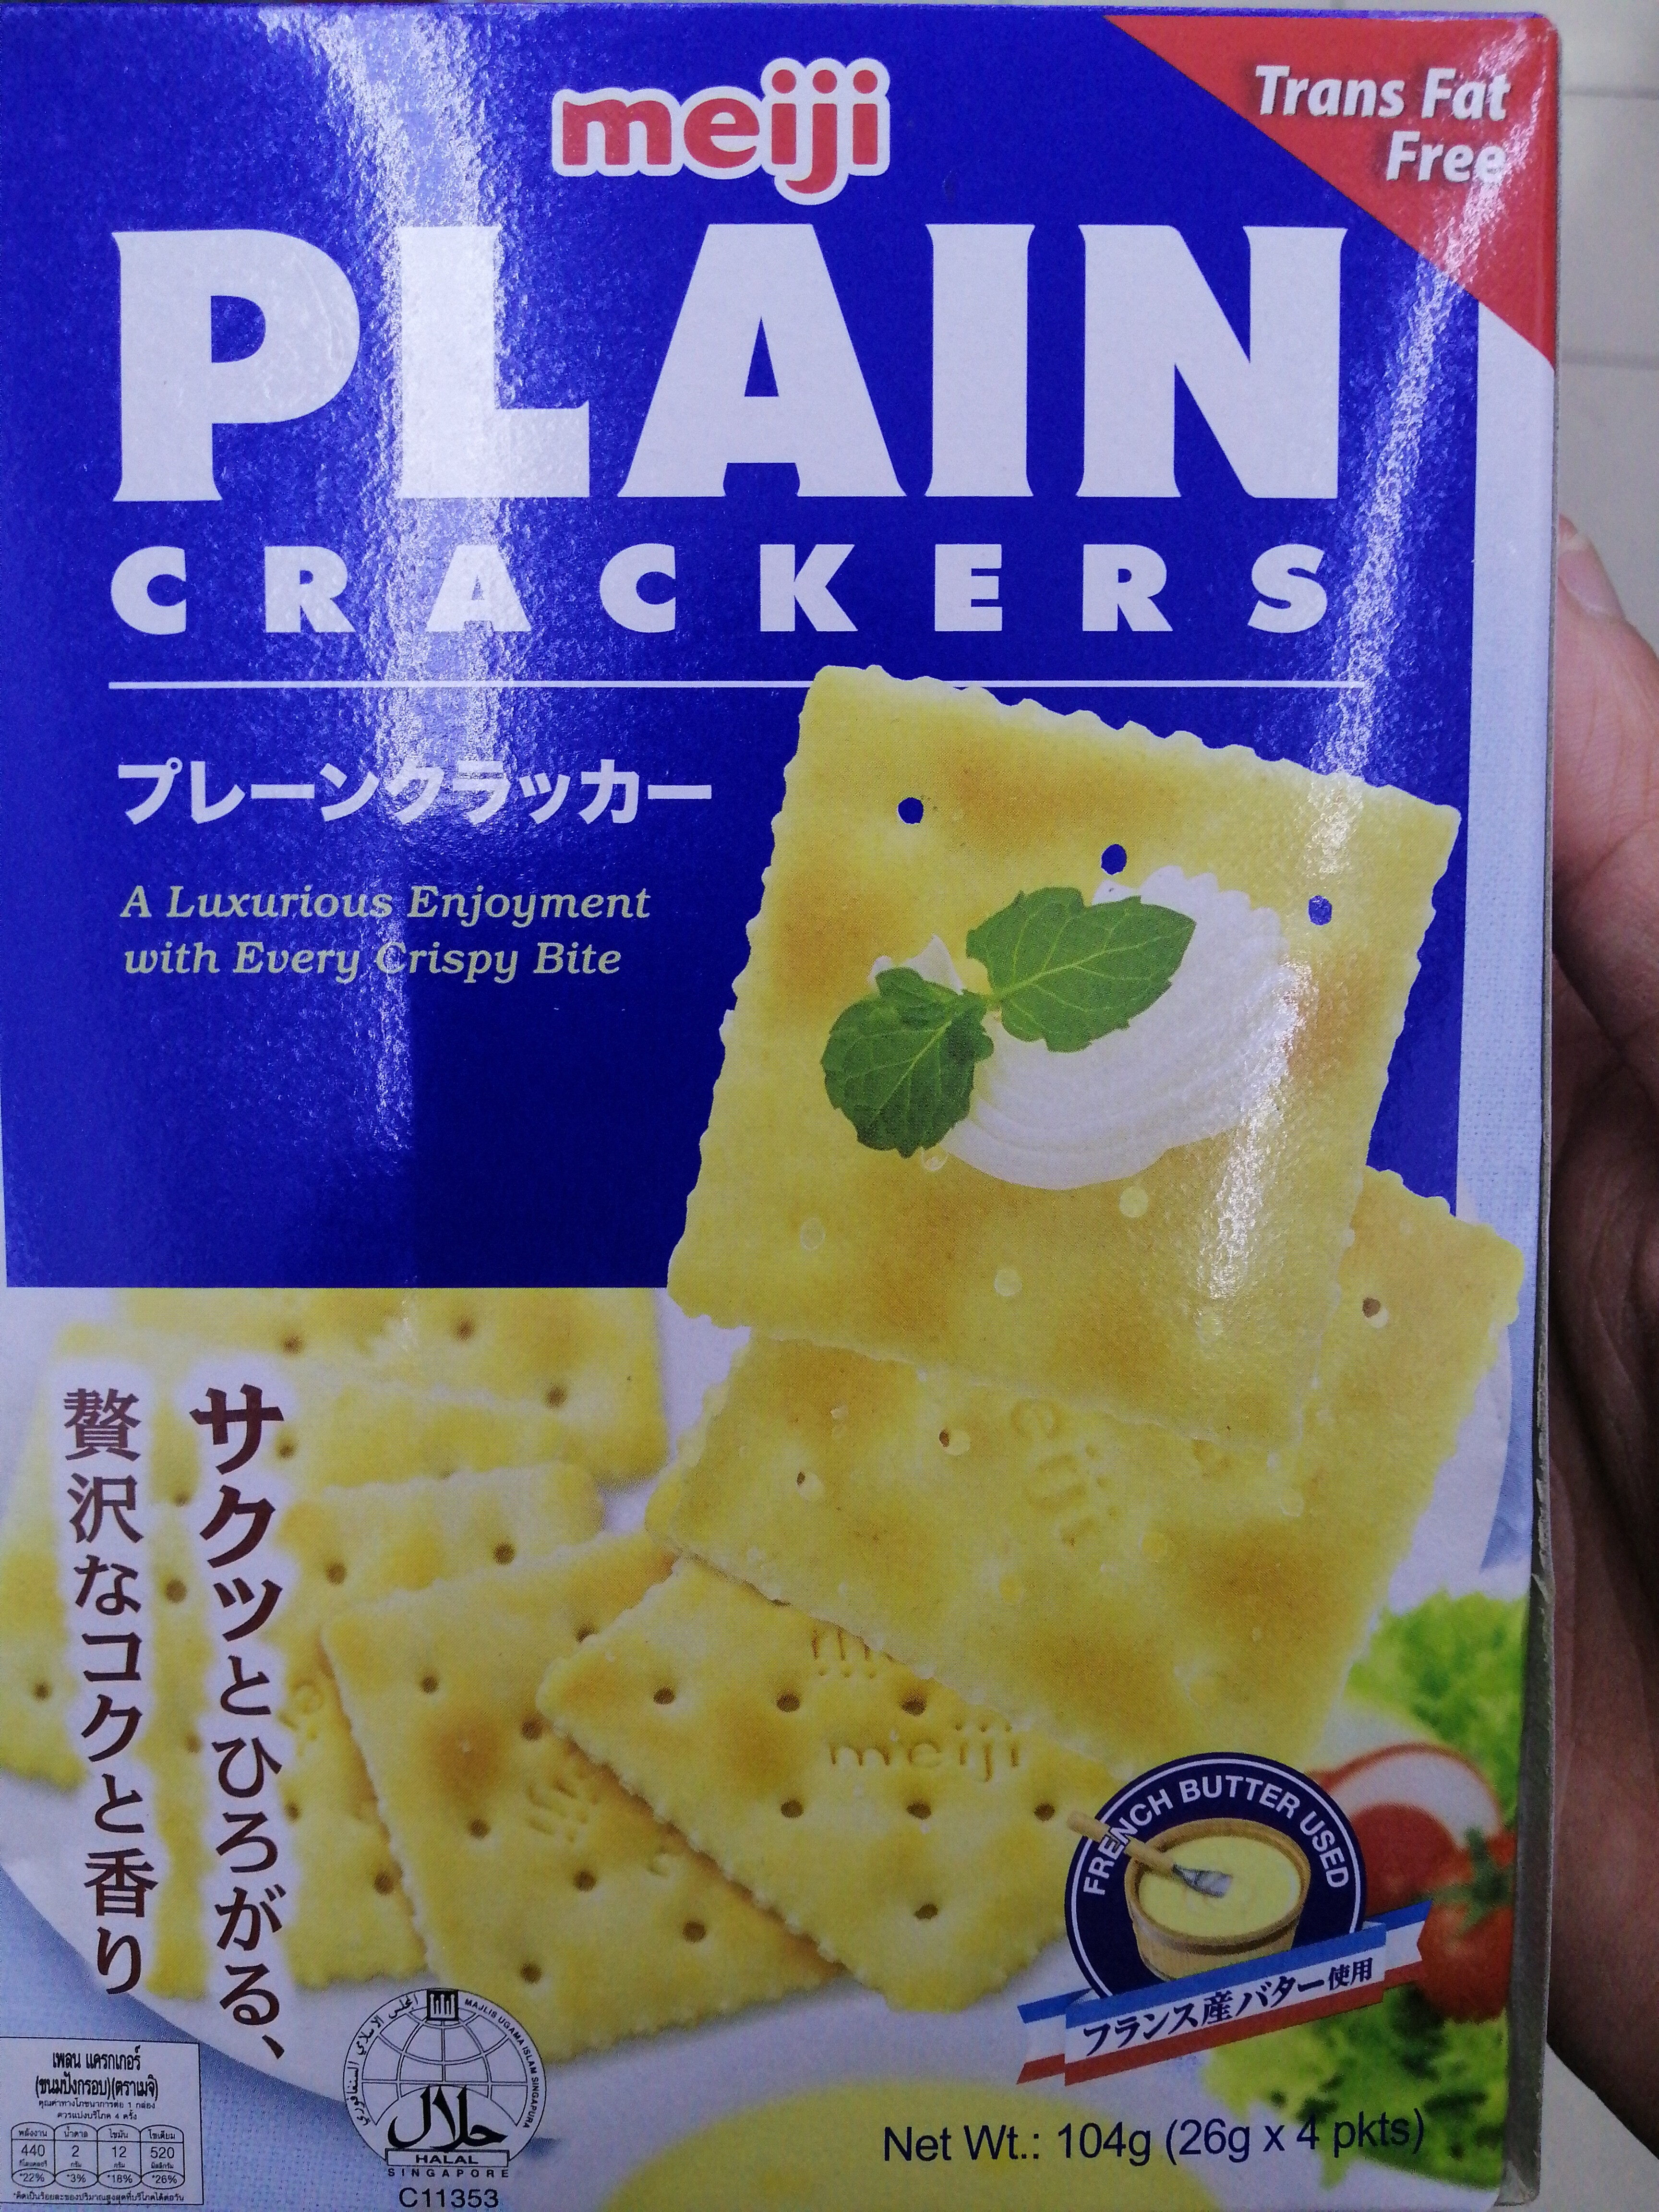 Meiji Plain Crackers 4 Packs 104G - Product - en